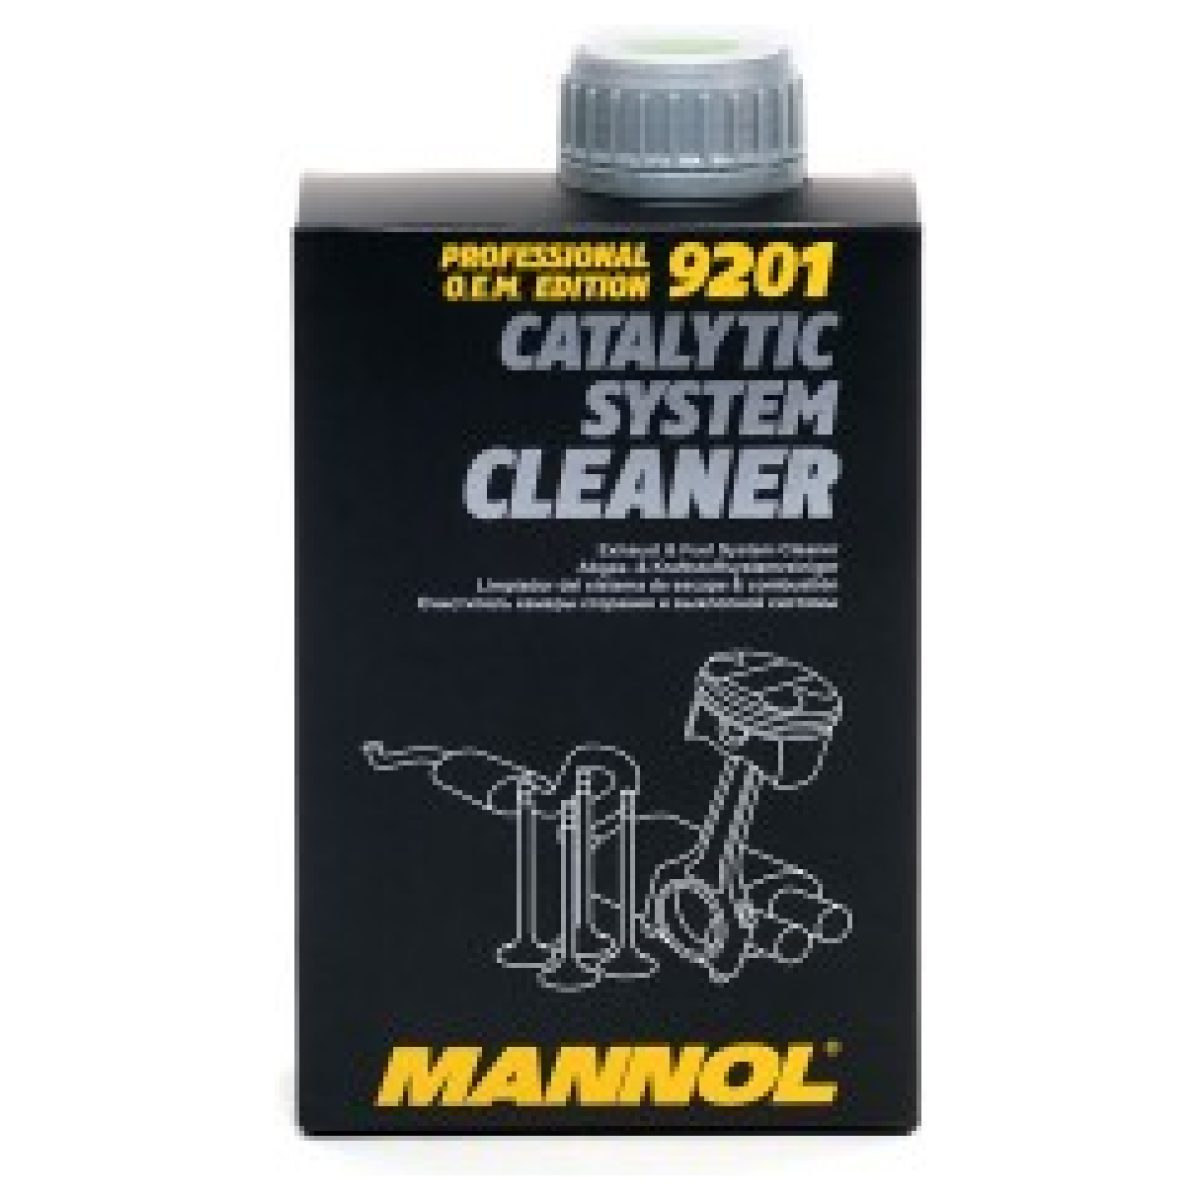 Catalytic system cleaner